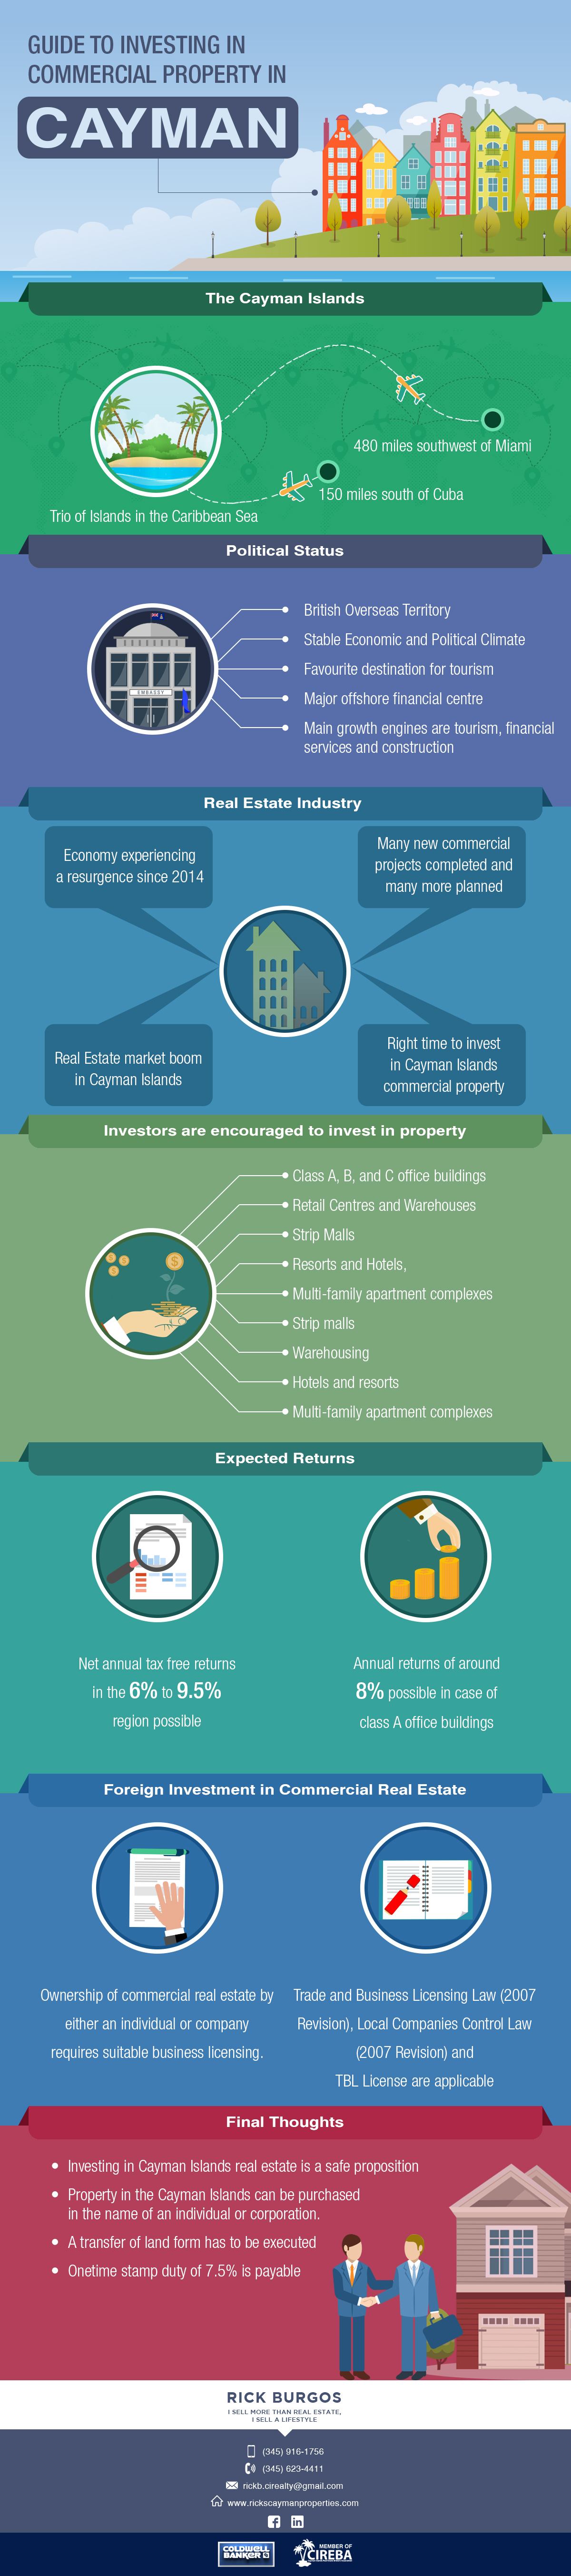 Investing in Commercial Property in Cayman